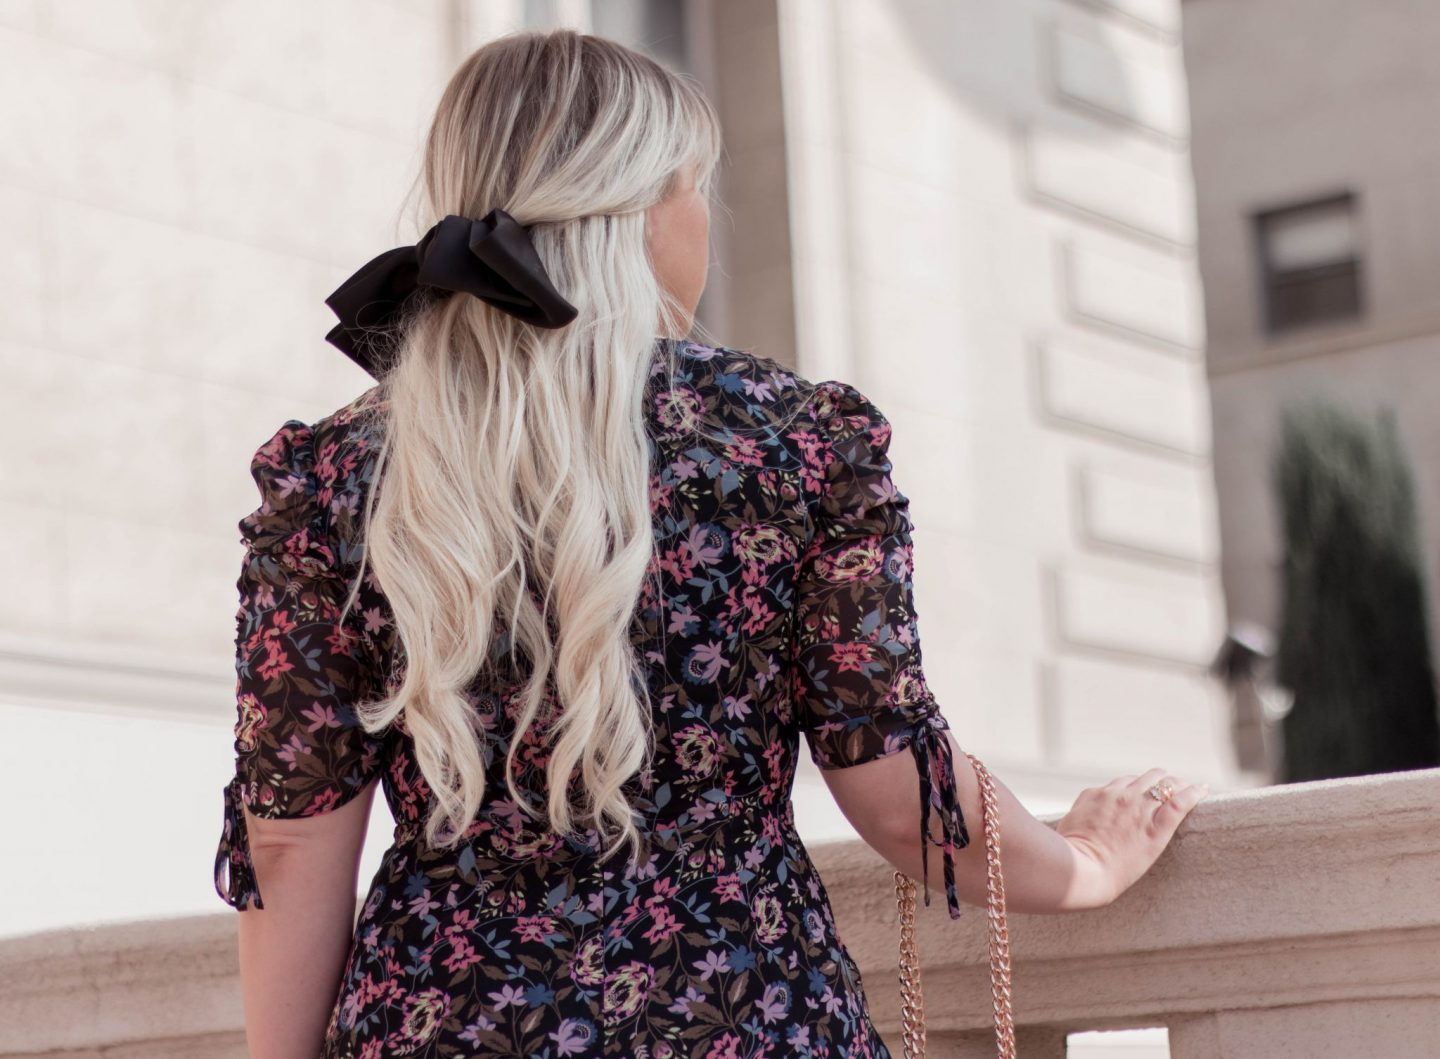 Fashion Blogger Elizabeth Hugen of Lizzie in Lace styles a black floral midi dress with a black oversized hair bow